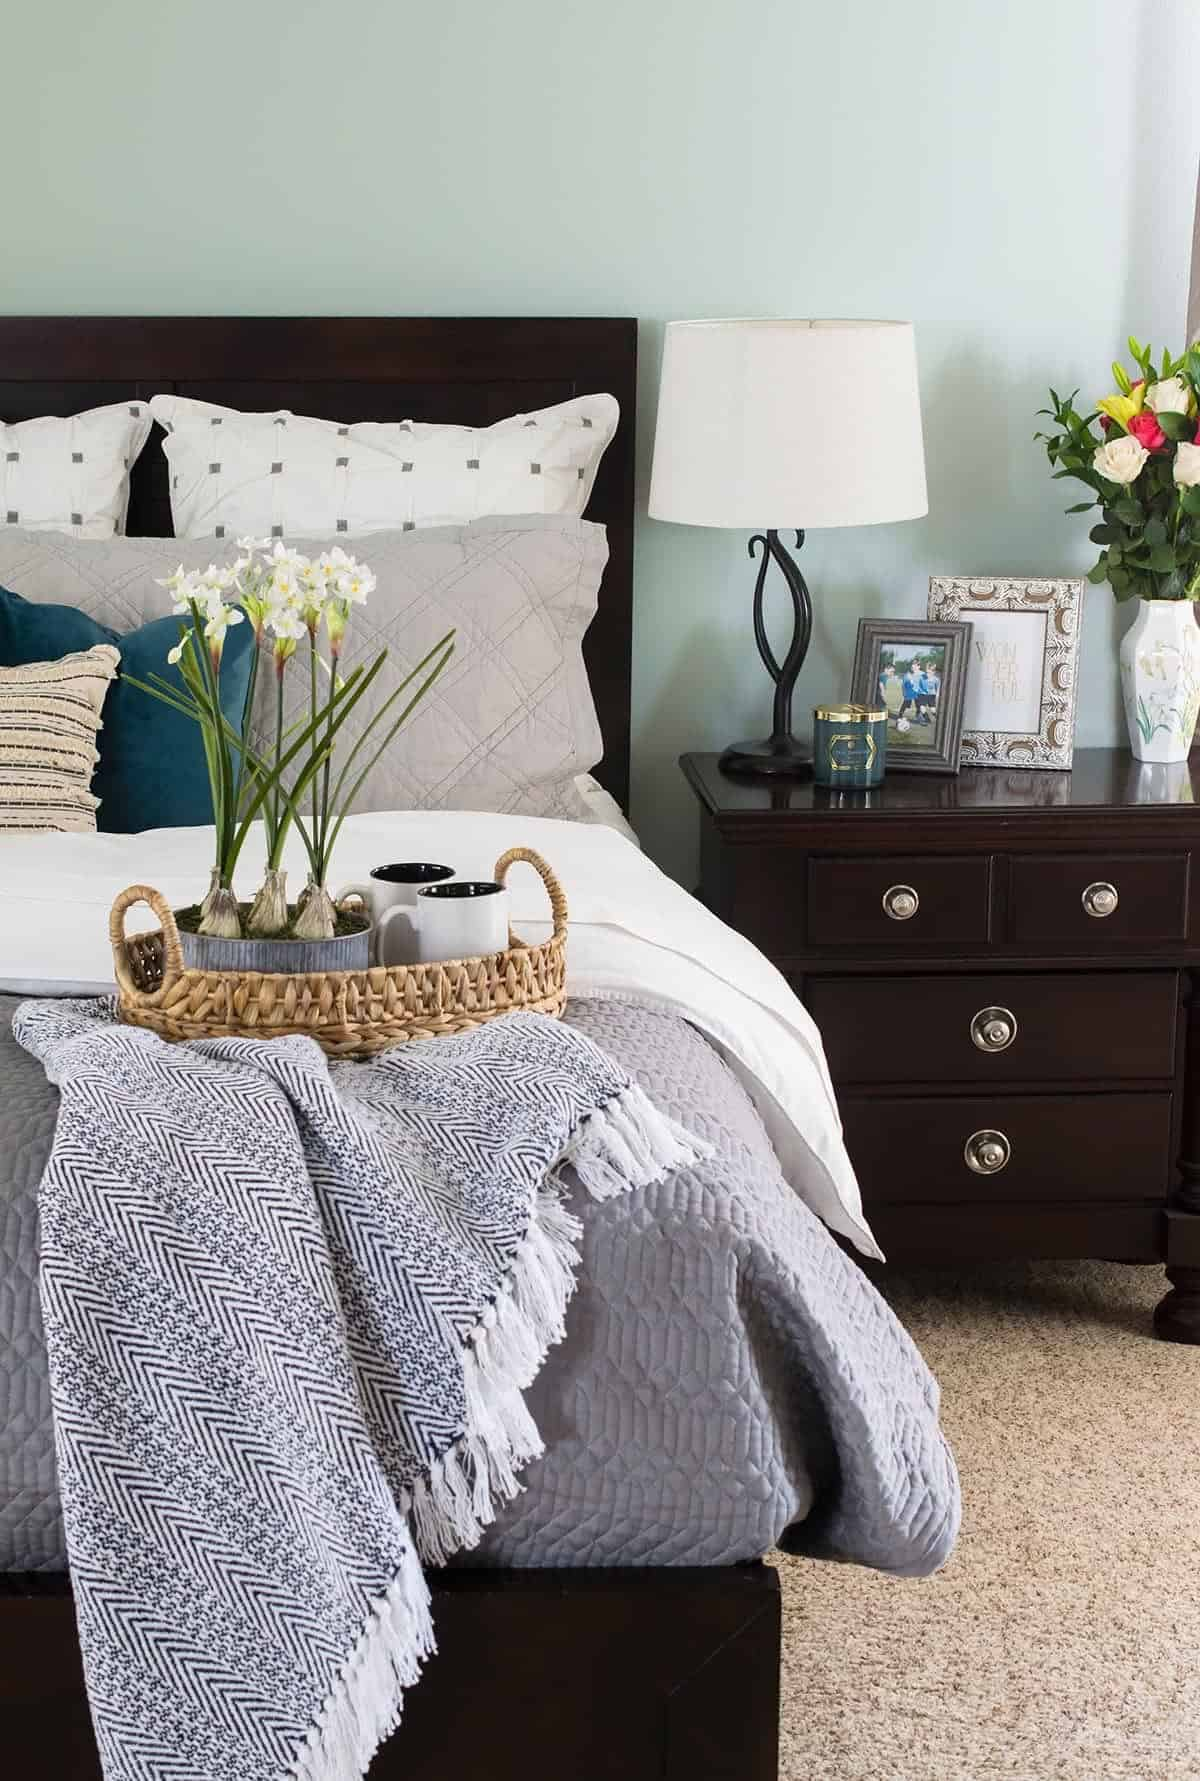 How To Make a bed look like Magazines without going to extremes.